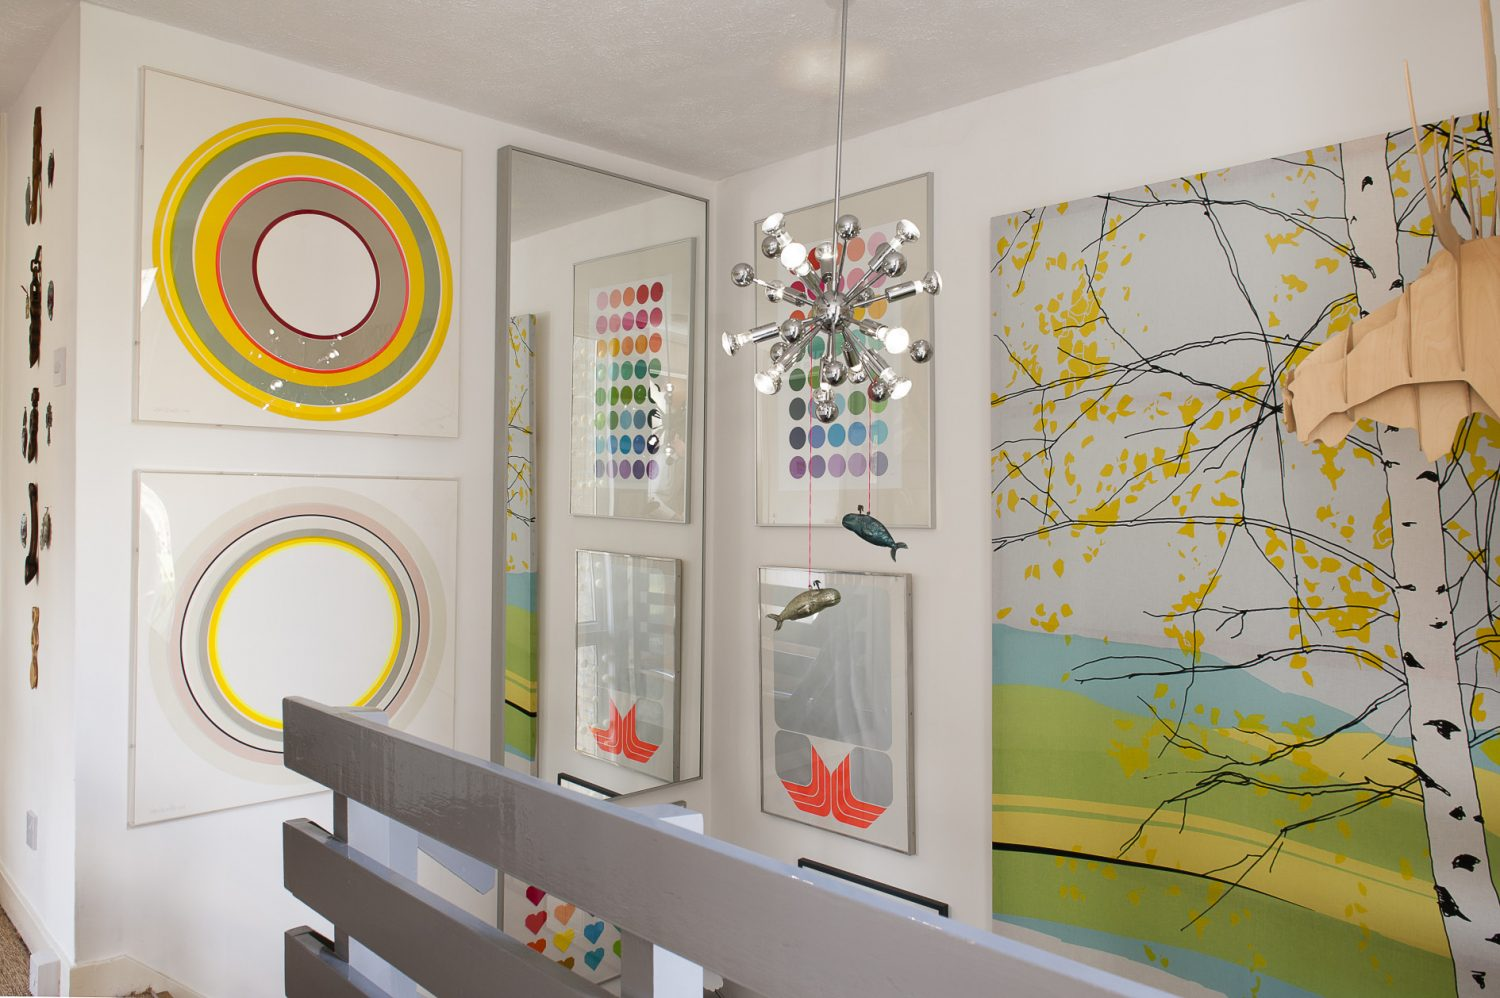 Two sizable canvases depicting large neon circles by Sam's favourite artist, Sophie Smallhorn, hang to the left of the landing